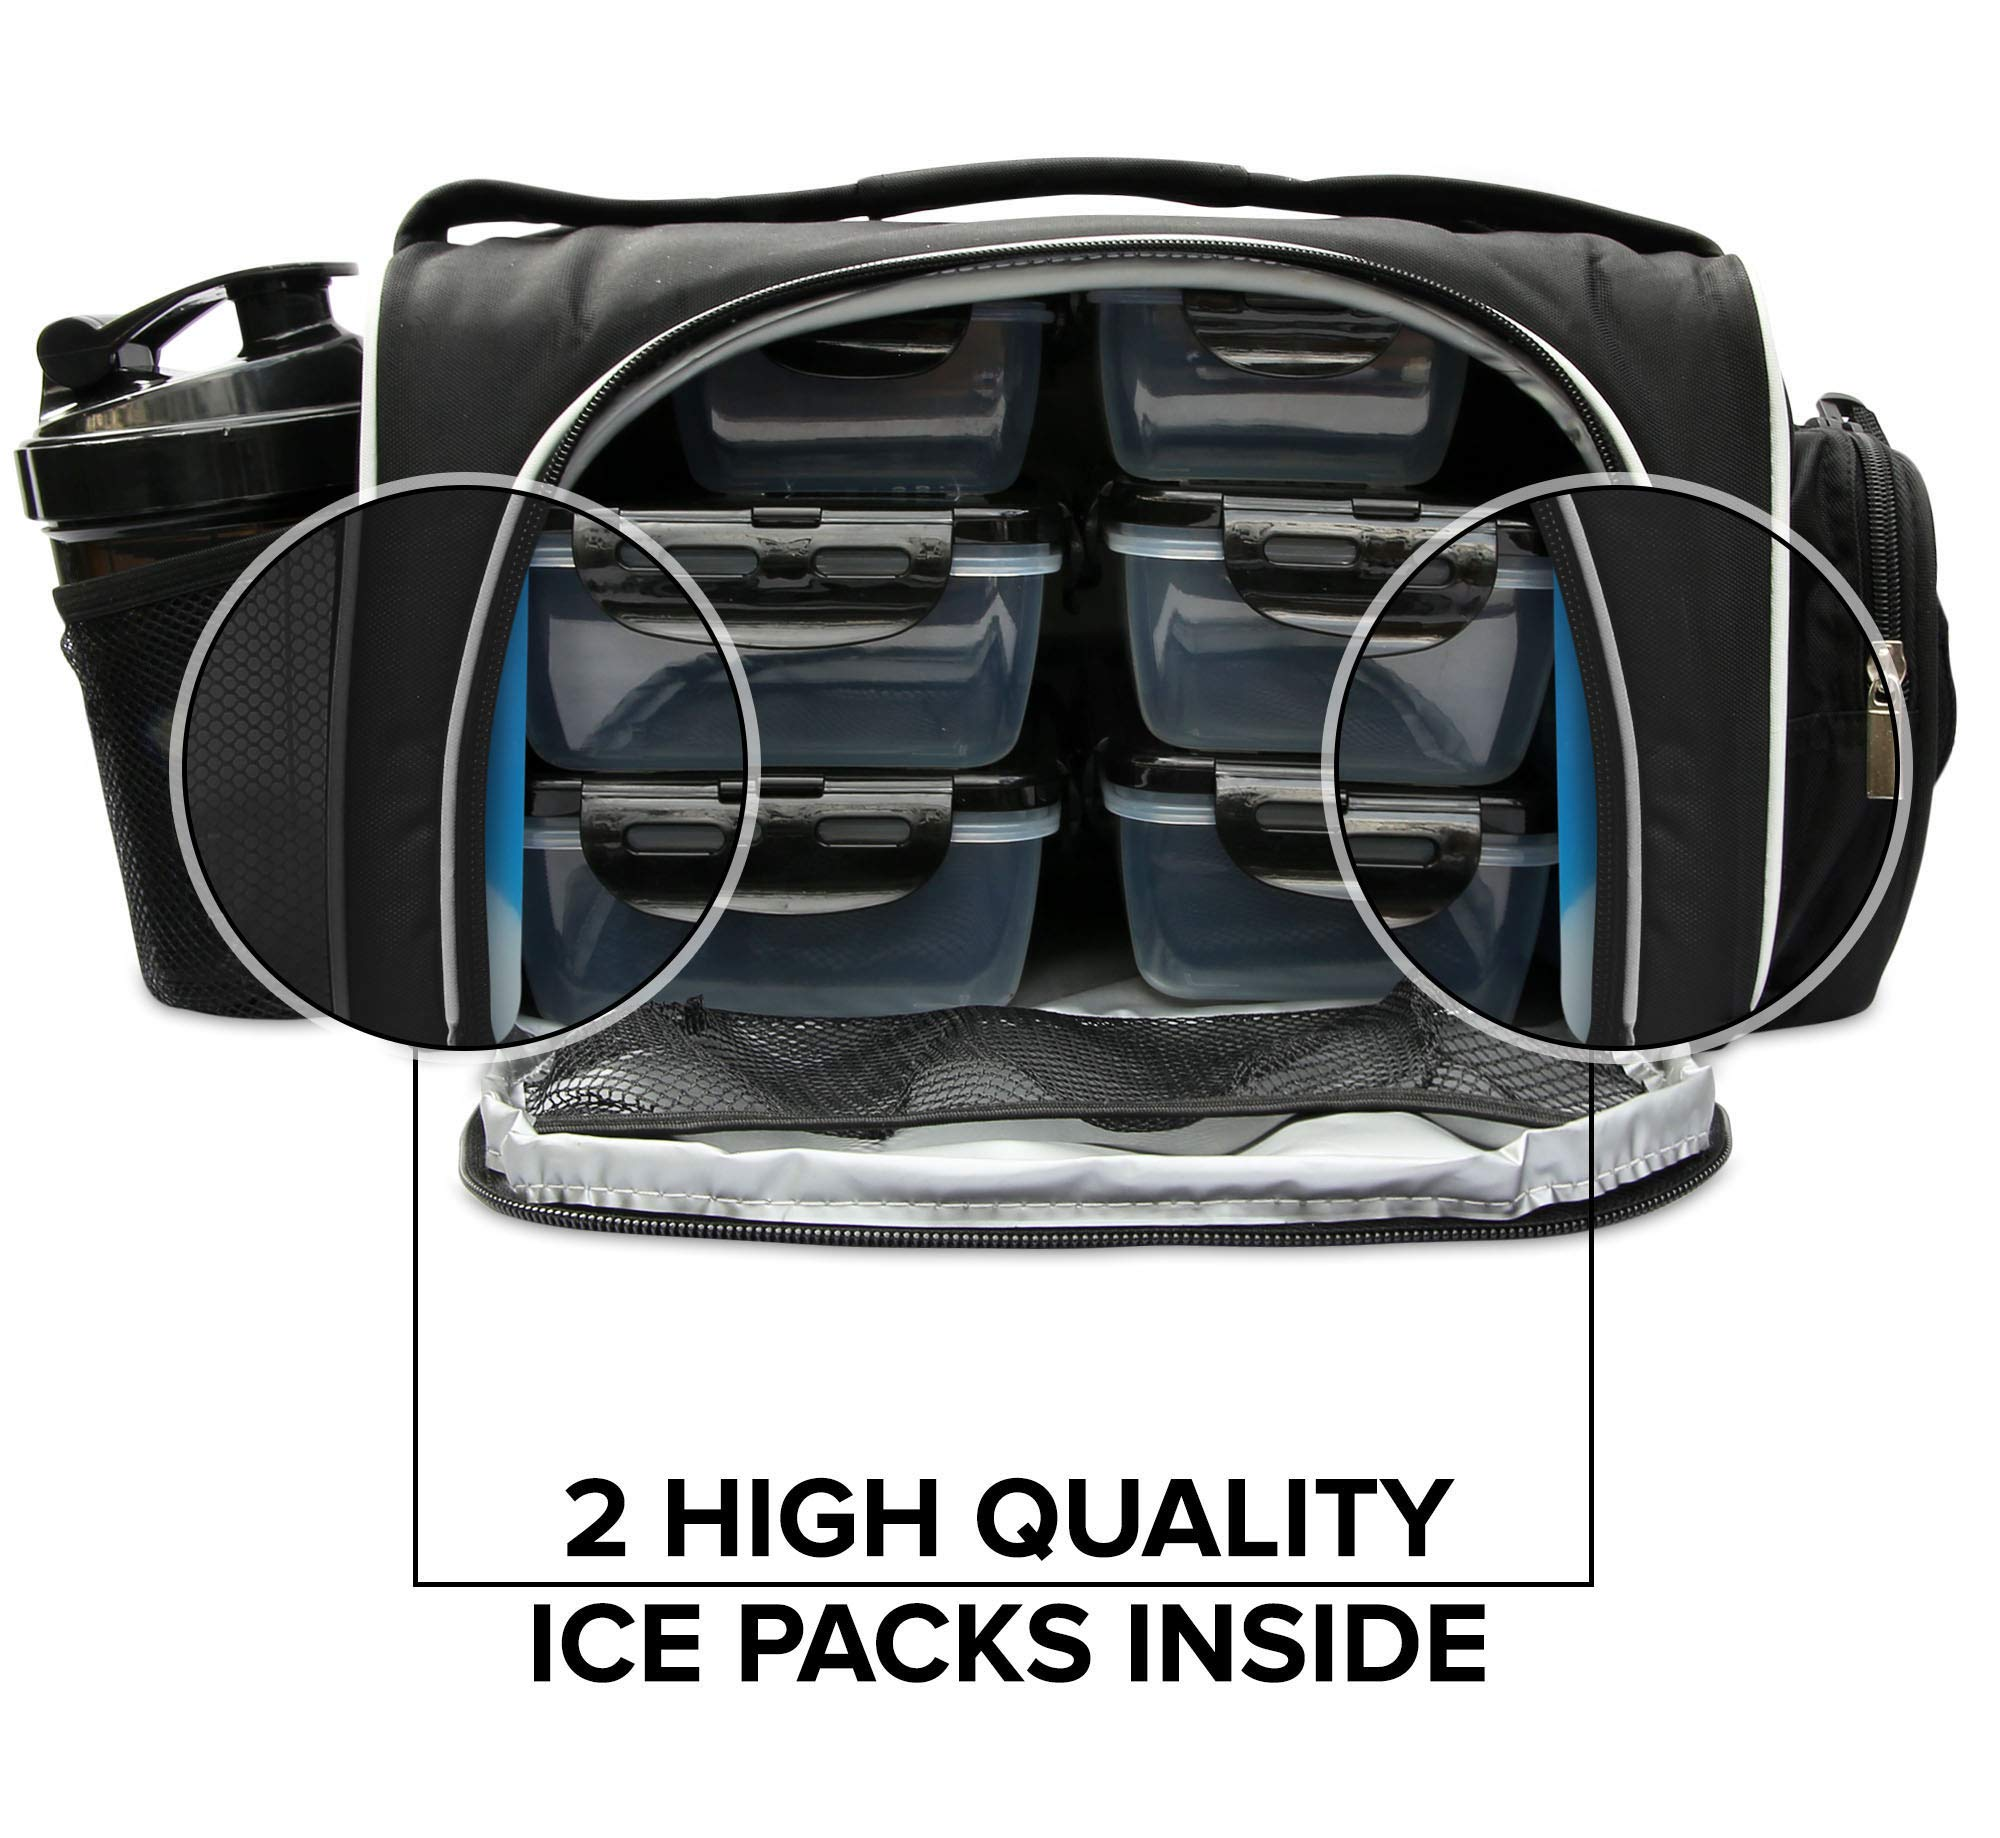 Meal Prep Bag By TO GO Insulated Lunch Meals Bag W/6 Portion Control Containers,2 ICE PACKS, Shaker, Pill Box,With an Adjustable shoulder. bag for meals (Black/new) by TO GO (Image #5)